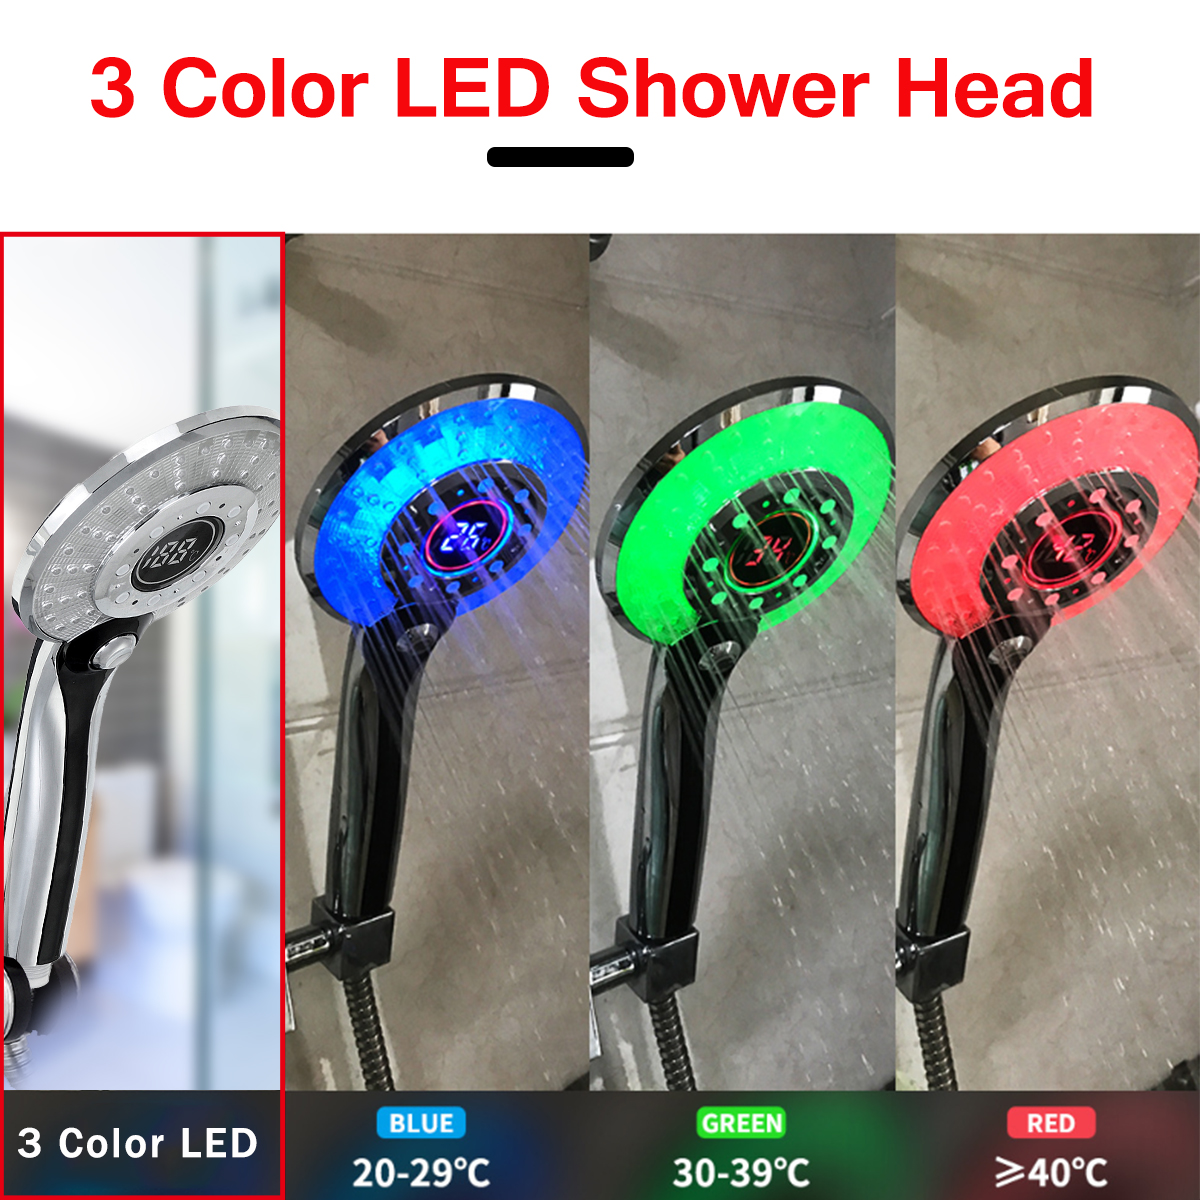 3 Spraying Mode Digital Display Handheld Shower Head with 3-color Temperature Control LED Light Water-Saving